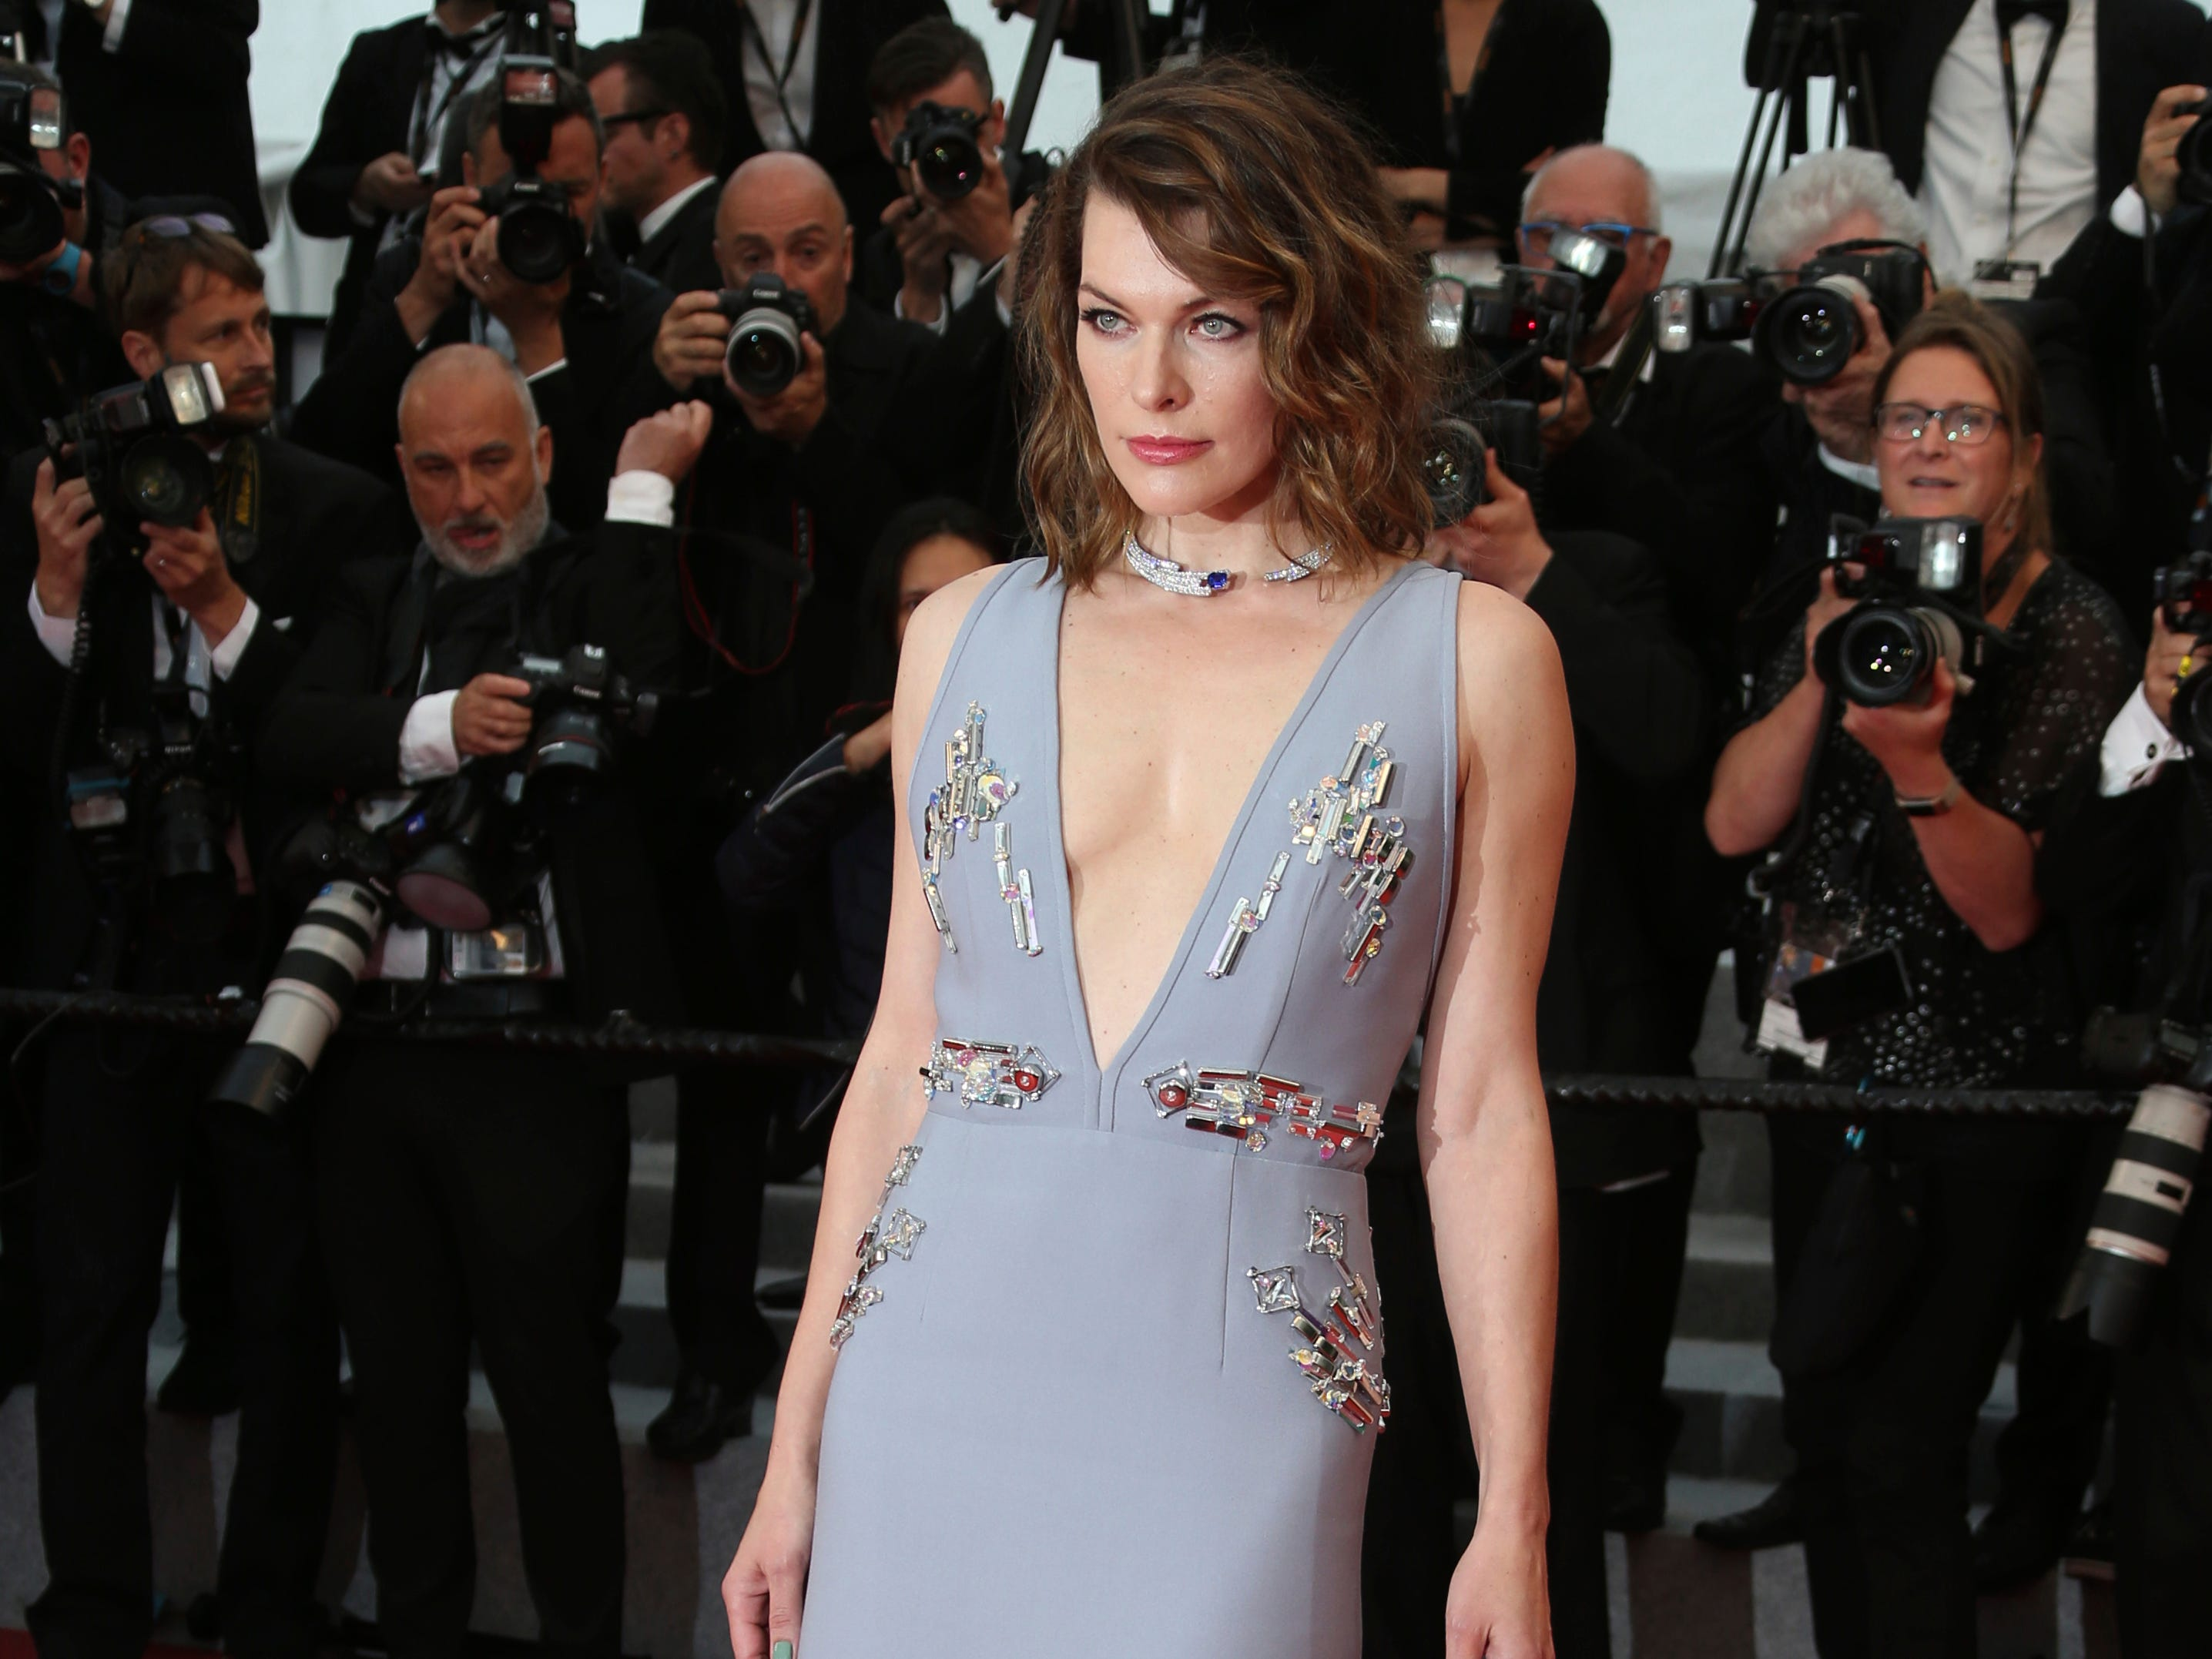 Actress Milla Jovovich poses for photographers upon arrival at the premiere of the film 'Burning' at the 71st international film festival, Cannes, southern France, Wednesday, May 16, 2018. (Photo by Joel C Ryan/Invision/AP) ORG XMIT: CAN128